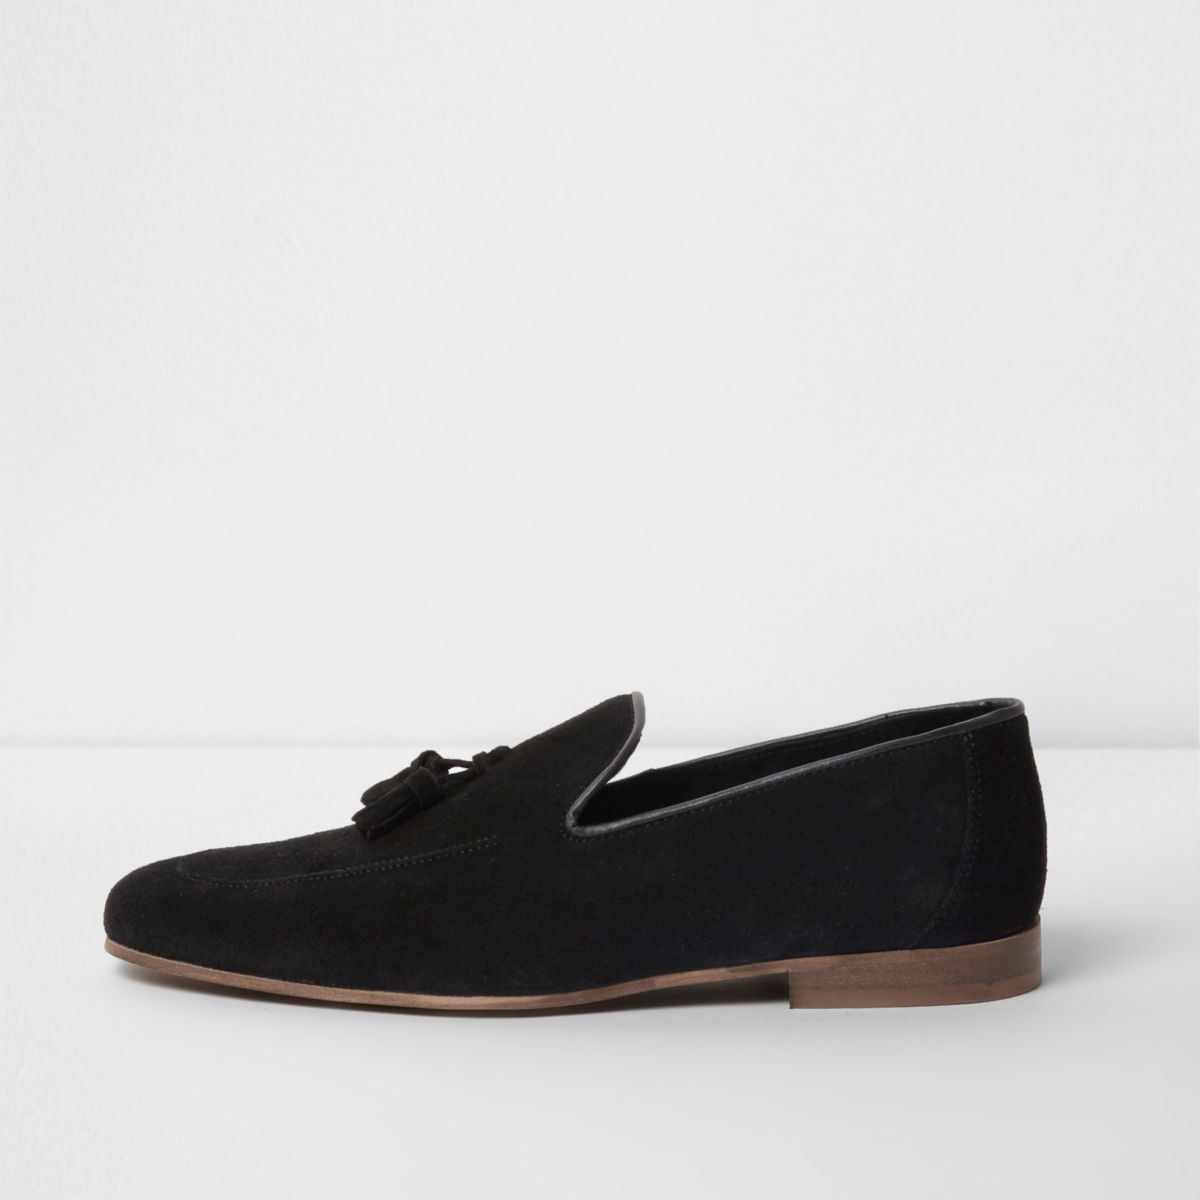 River Island Suede Loafers